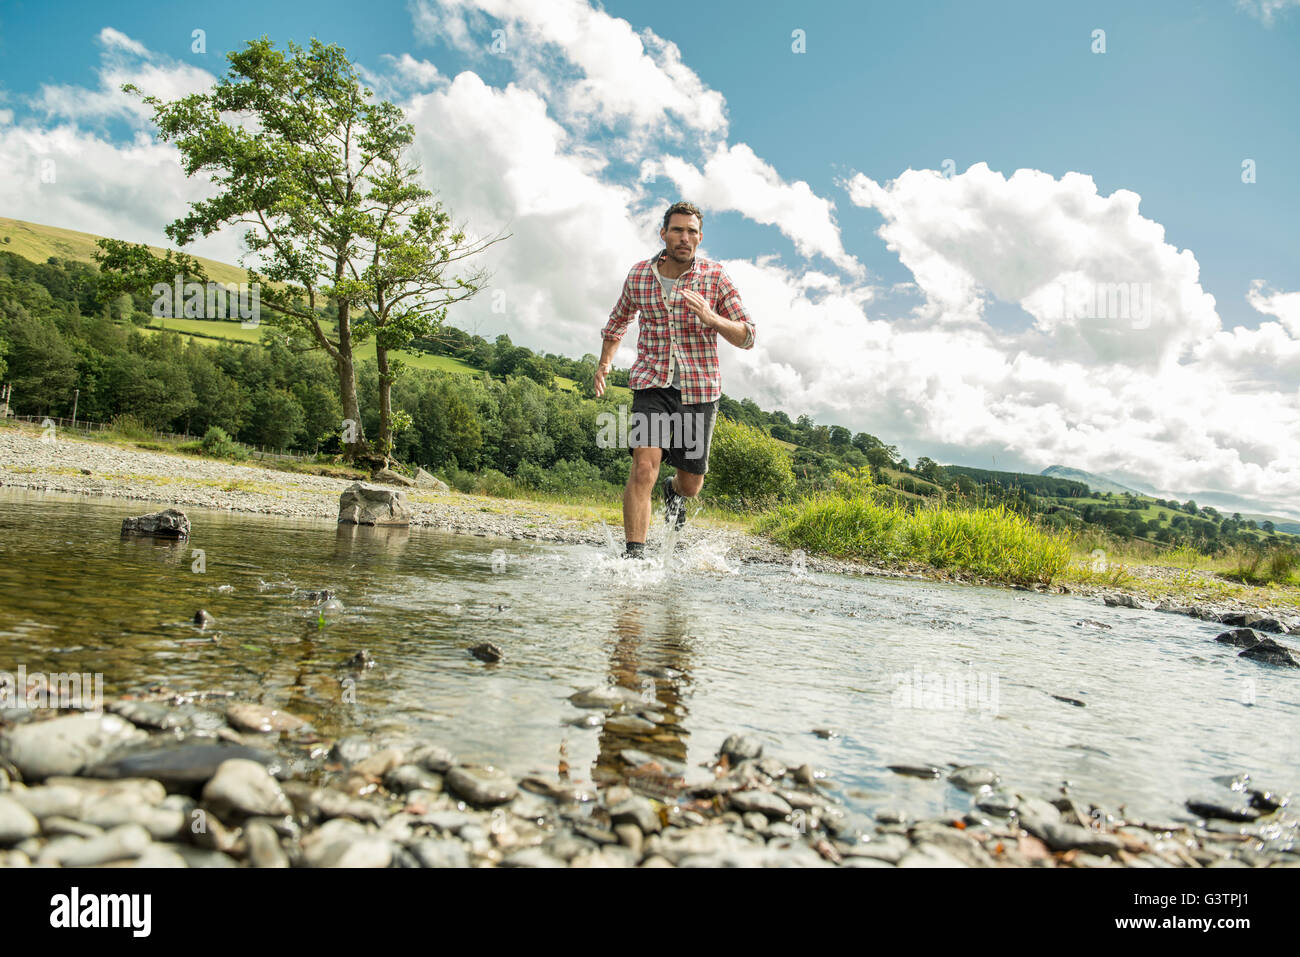 A man in a red check shirt striding across a shallow river near Bala Lake in Wales. - Stock Image